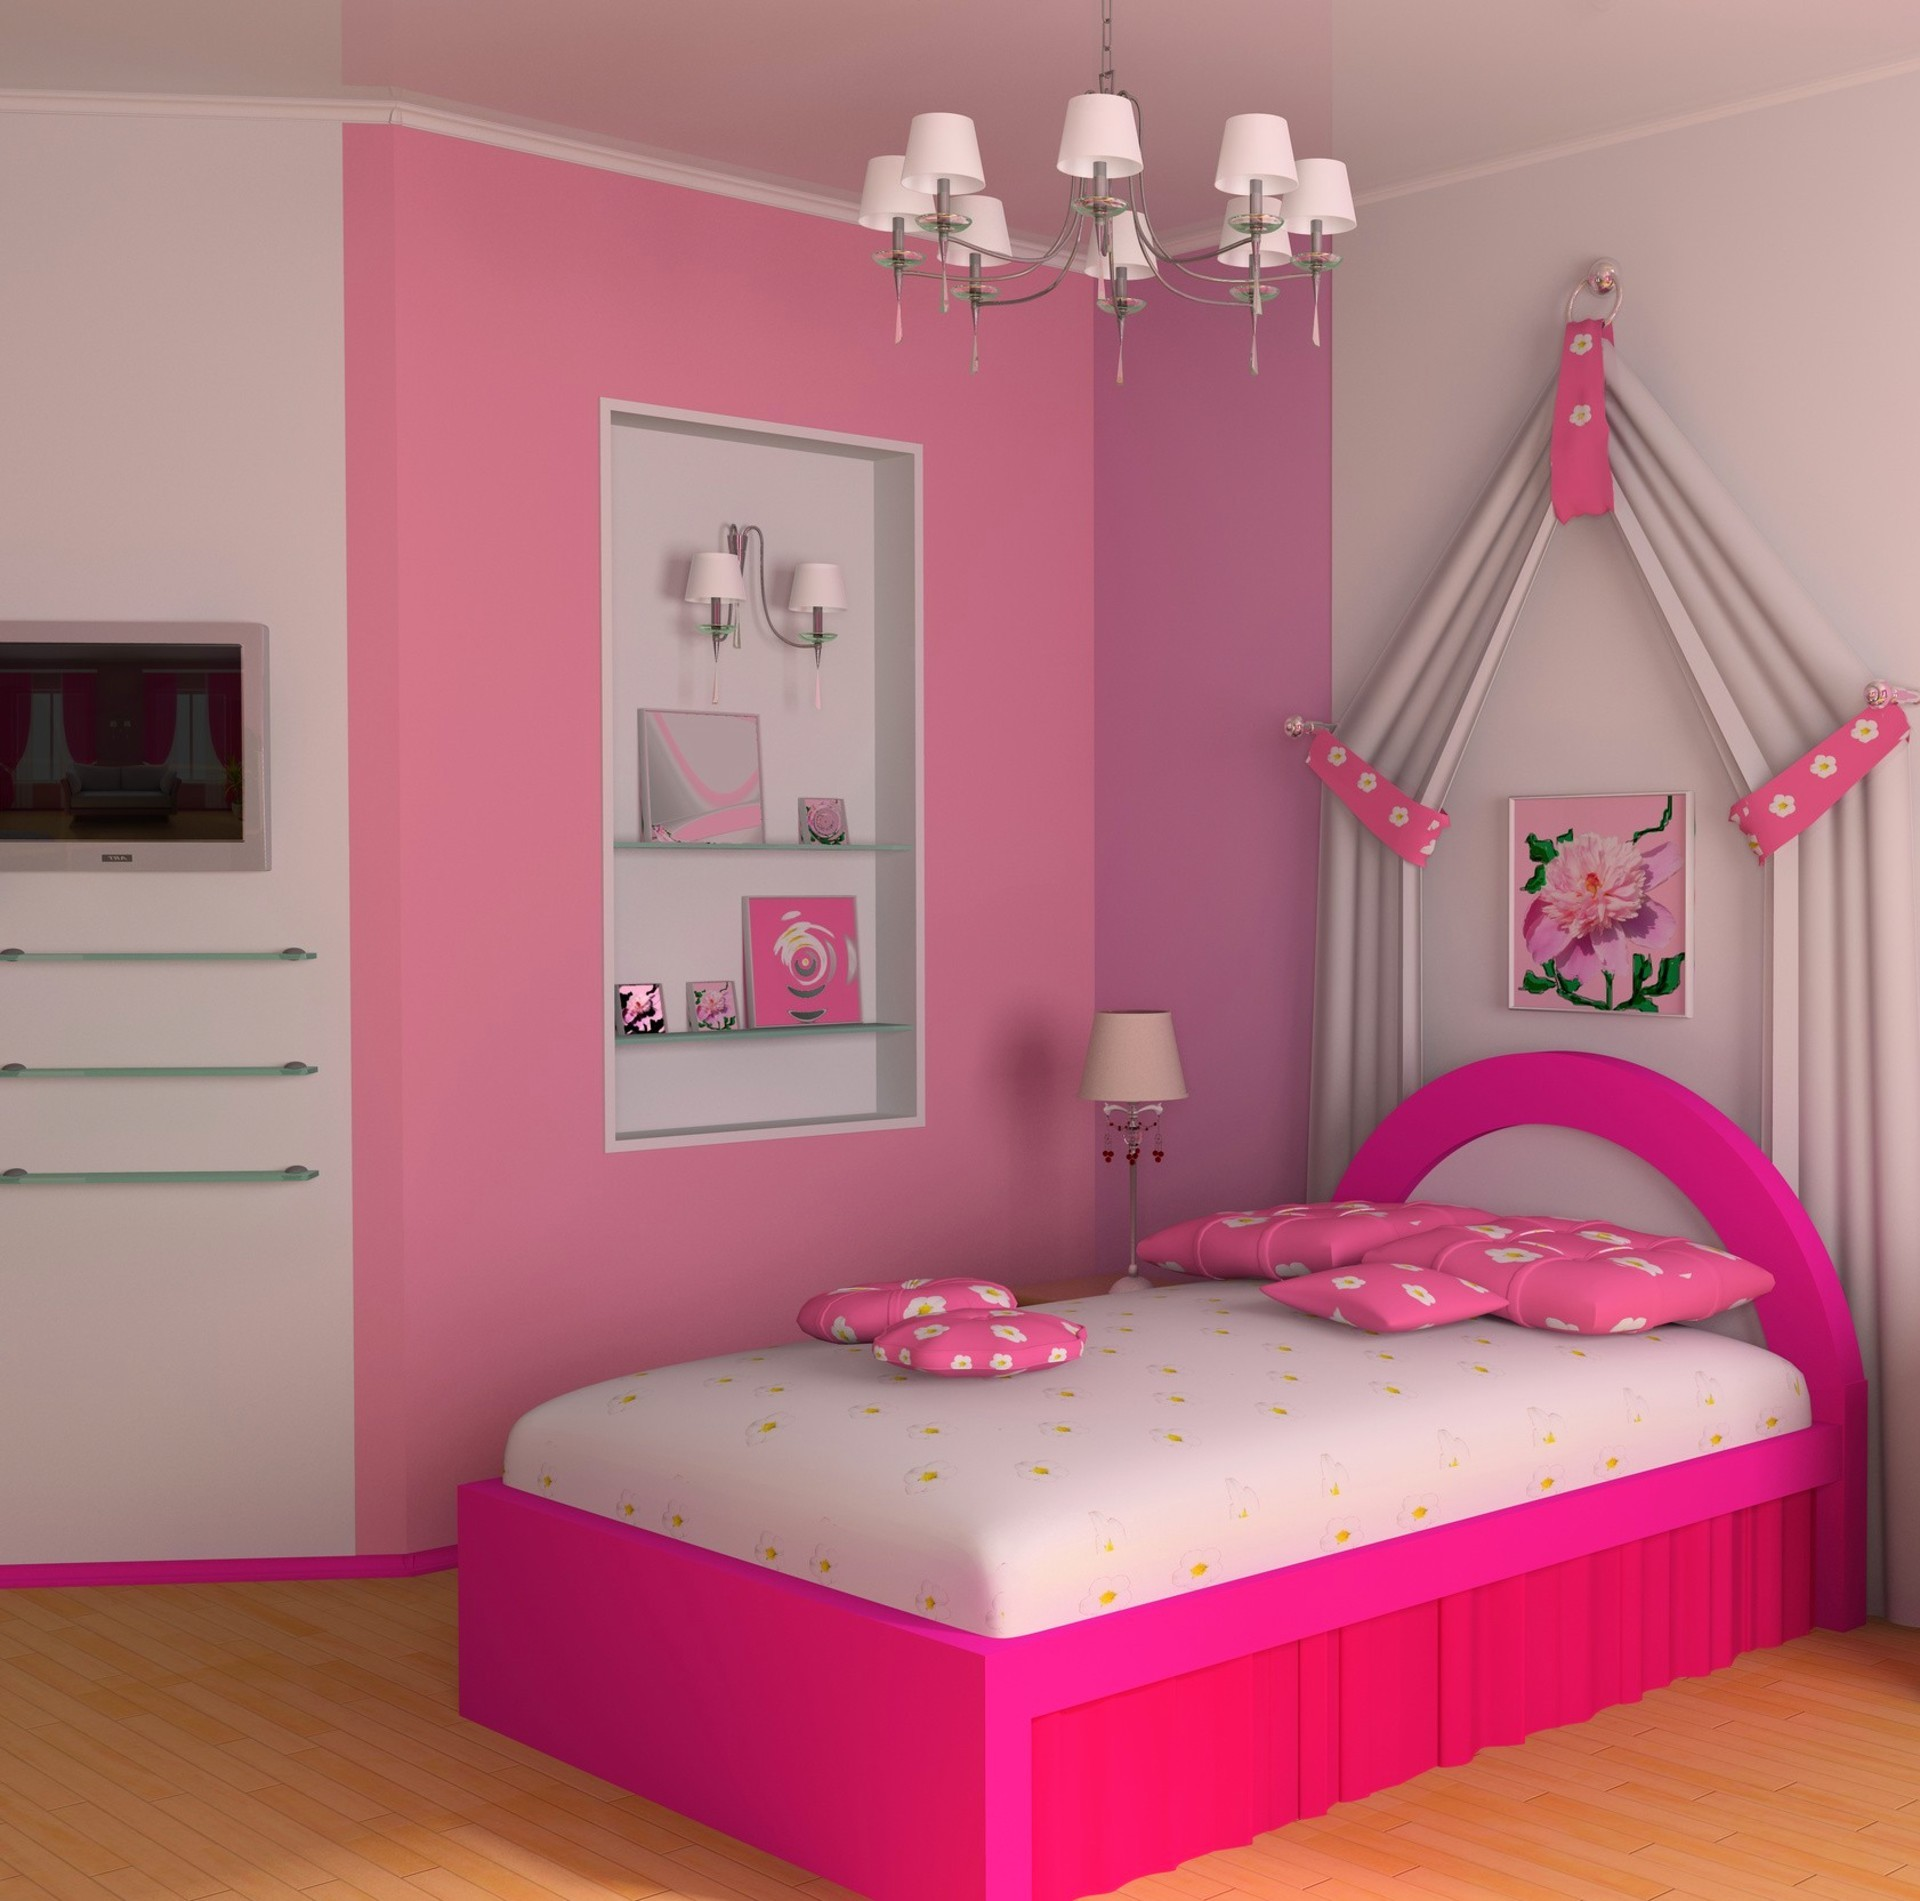 Wallpaper For Tween Girls: Cool Wallpaper For Girls Room (22+ Images